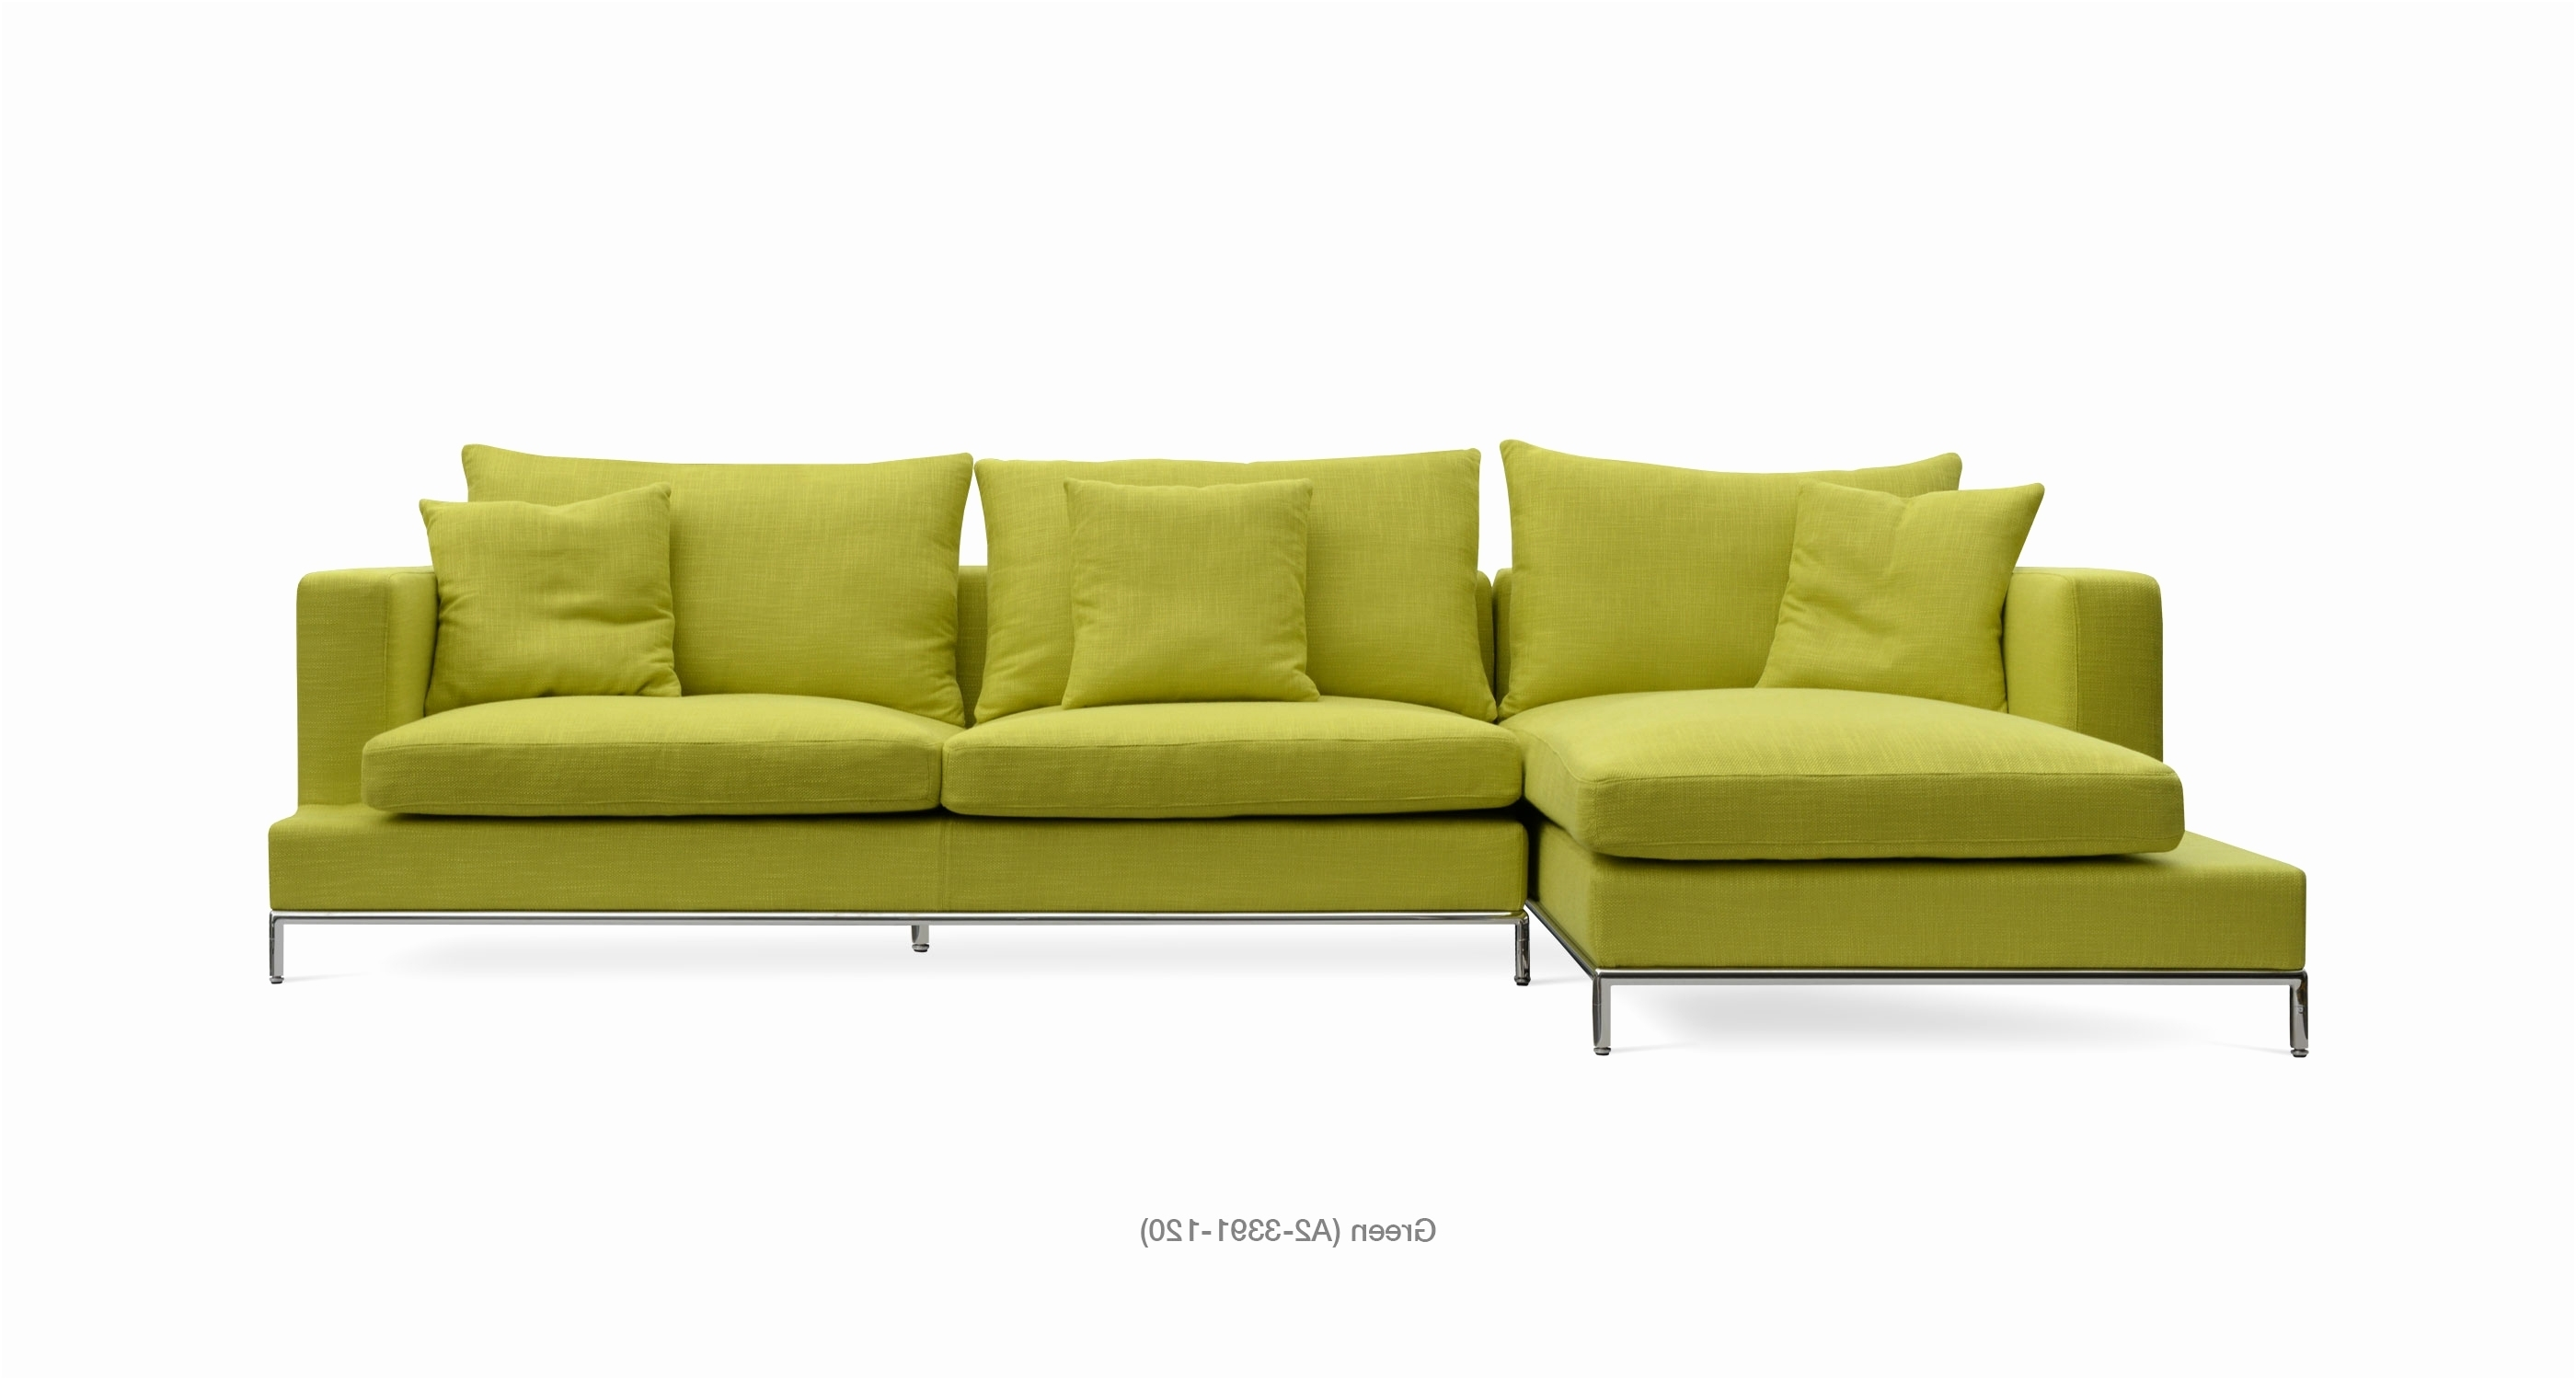 Elegant Sofa Sectional Best Of – Sofa Furnitures   Sofa Furnitures With Regard To Vaughan Sectional Sofas (View 10 of 10)